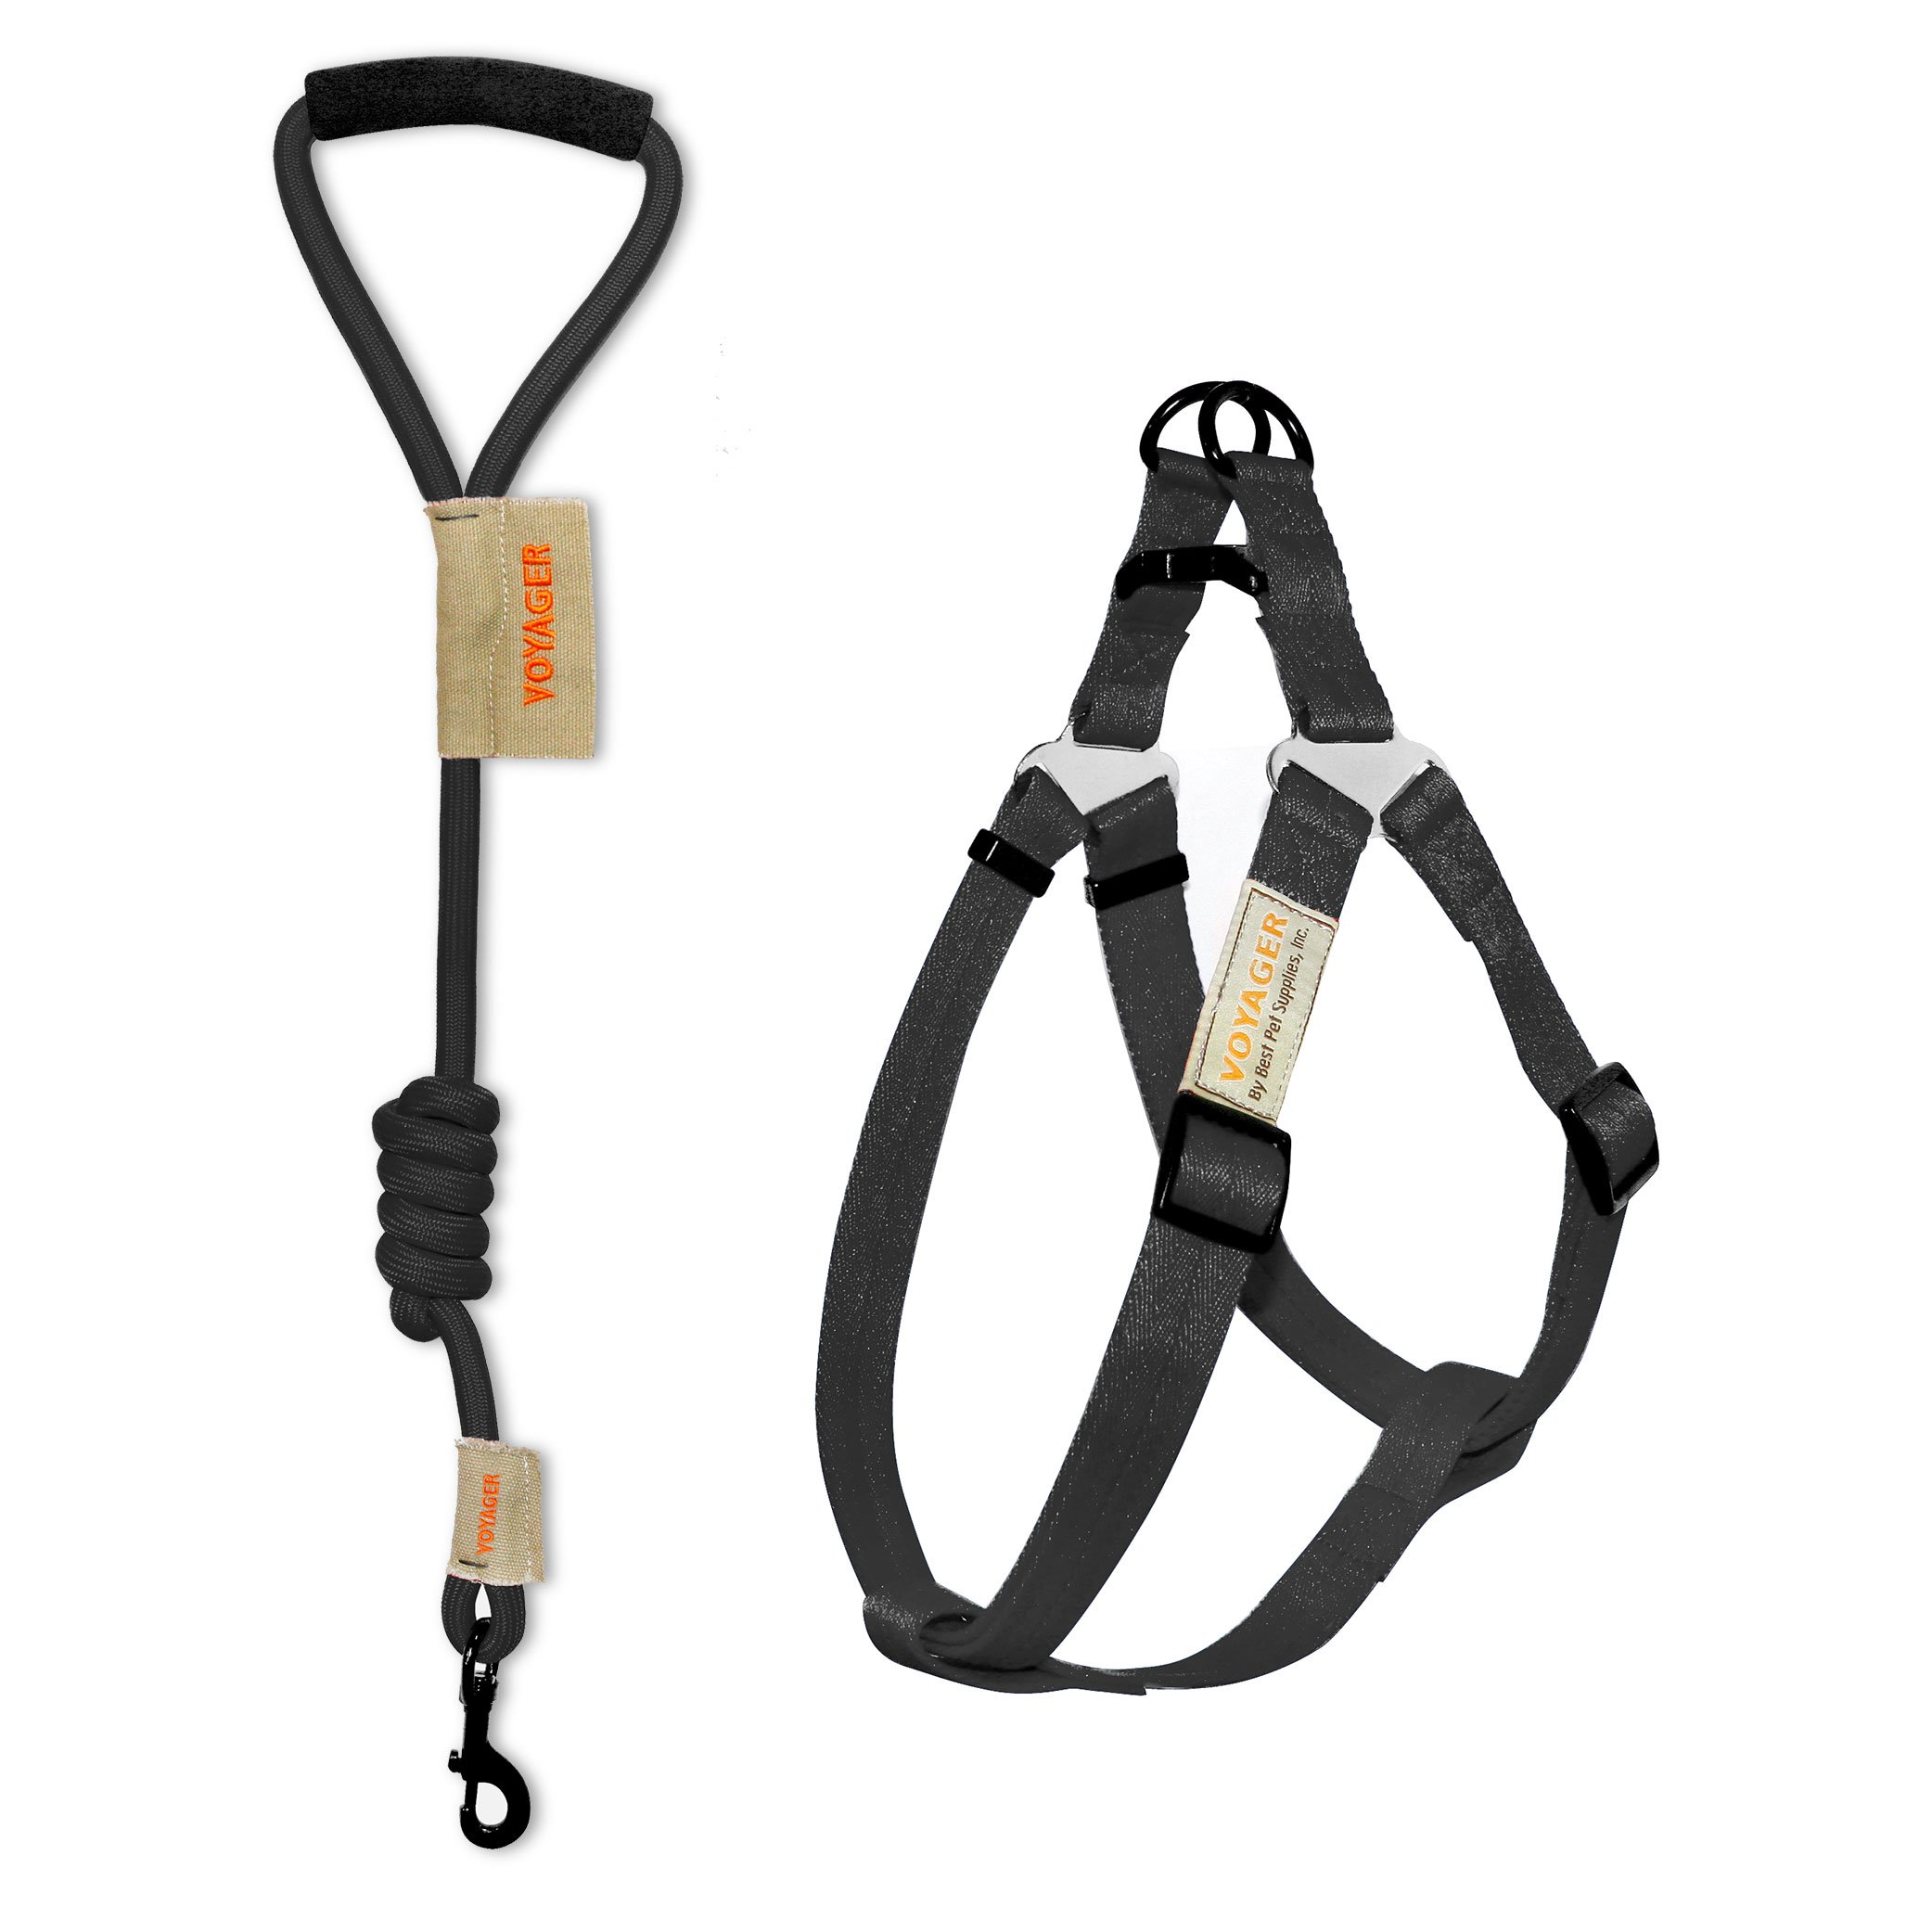 Voyager Step-in No Pull Adjustable Dog Walking Harness with 3 feet Foam Handle Nylon Webbing Mountain Rope Leash and Carry Pounch by Best Pet Supplies - Black, Medium